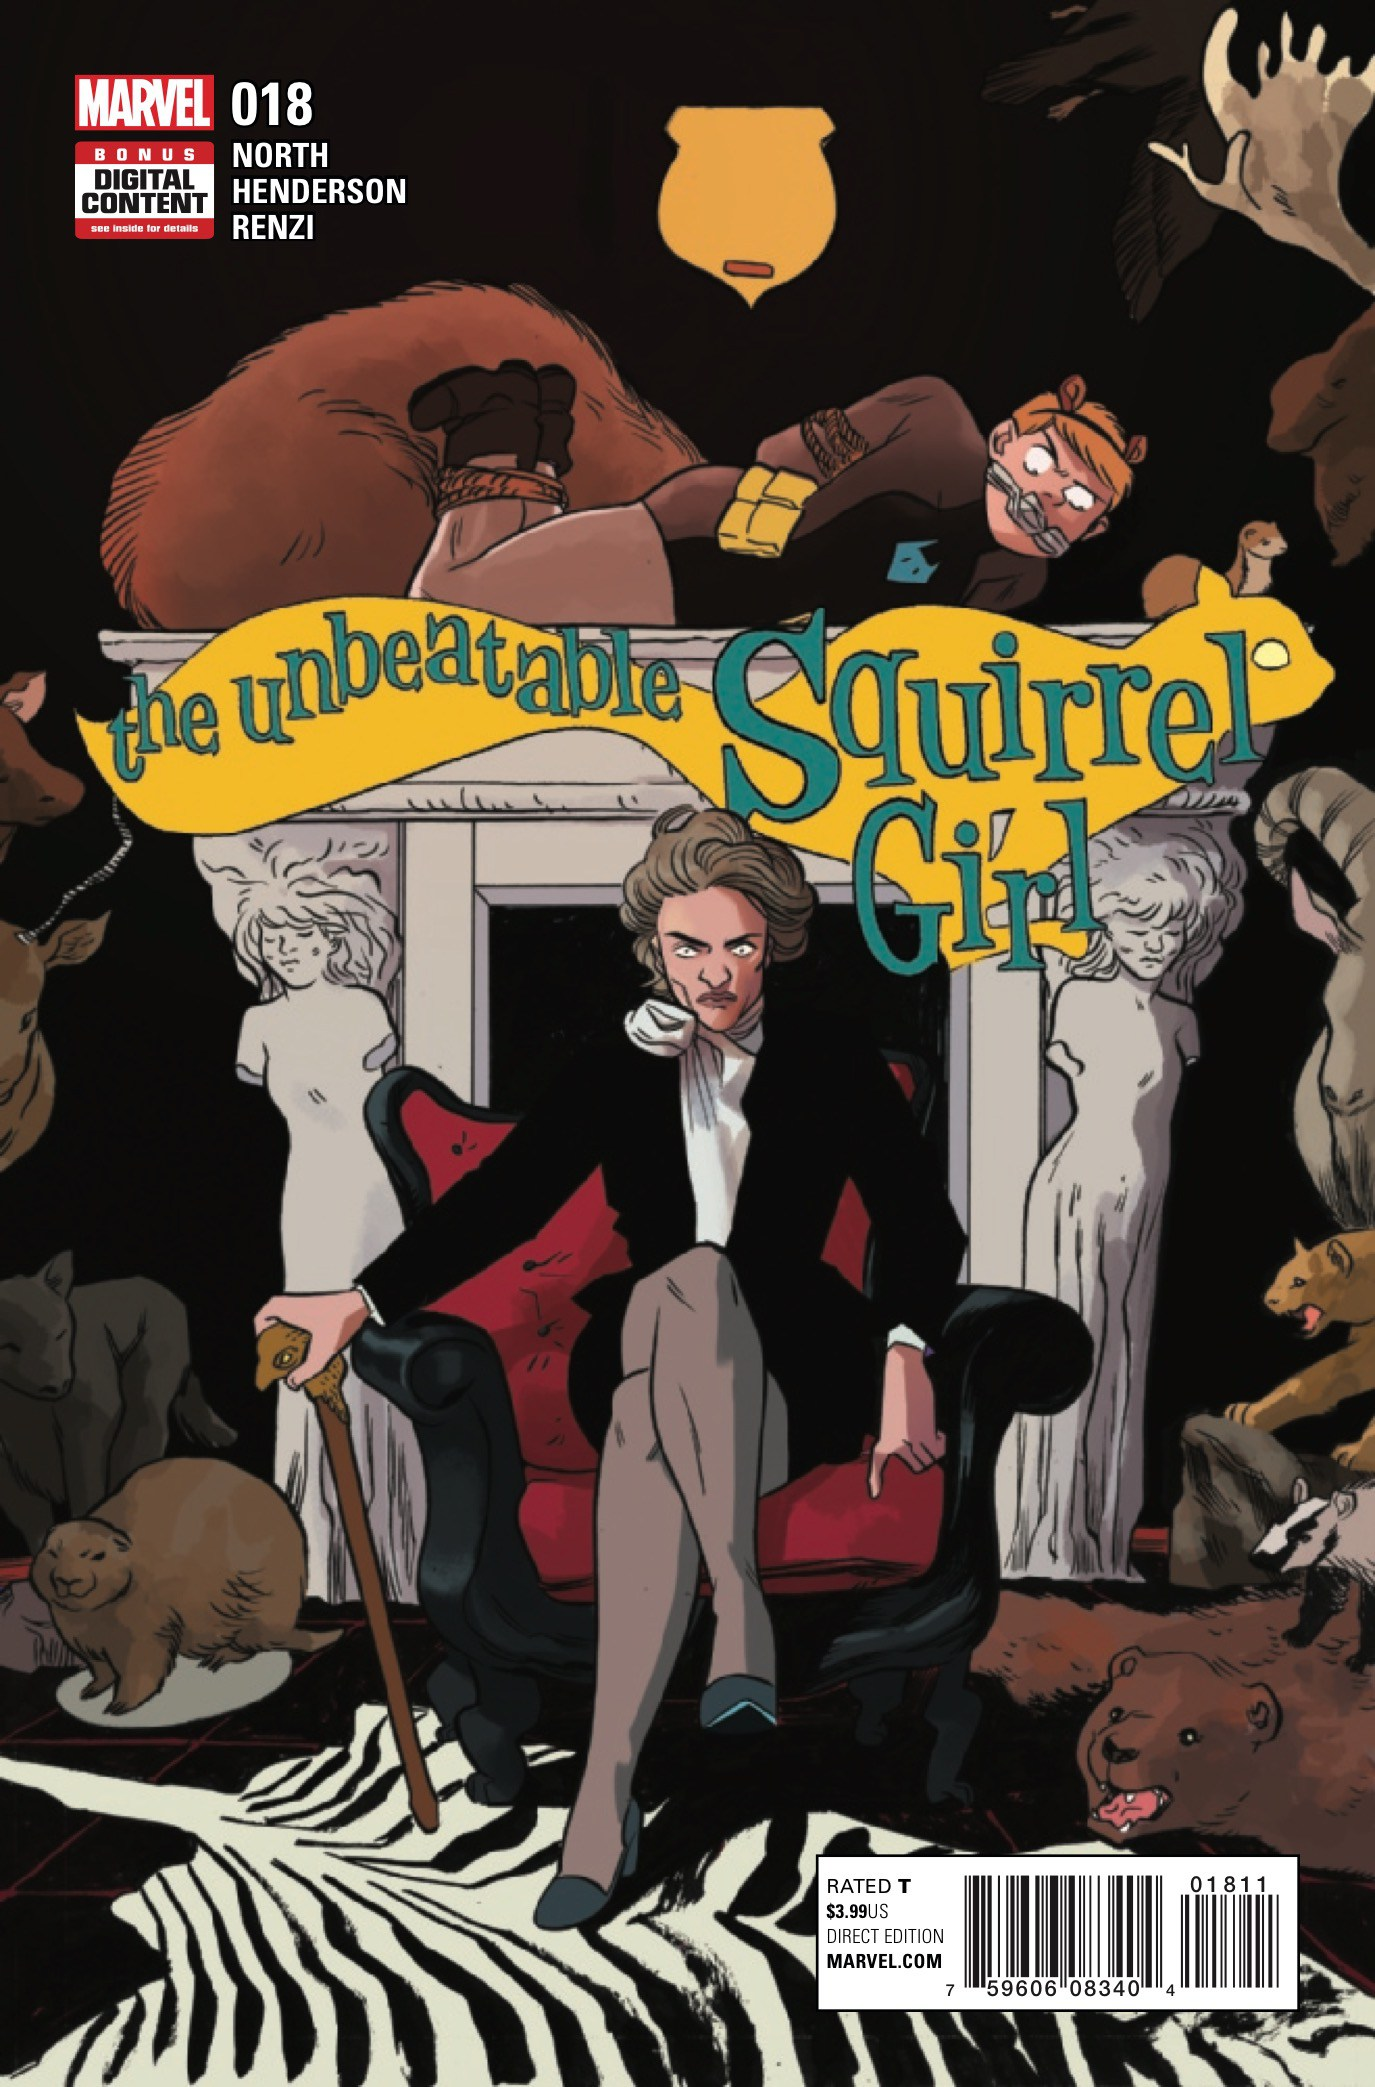 The Unbeatable Squirrel Girl #18 Review